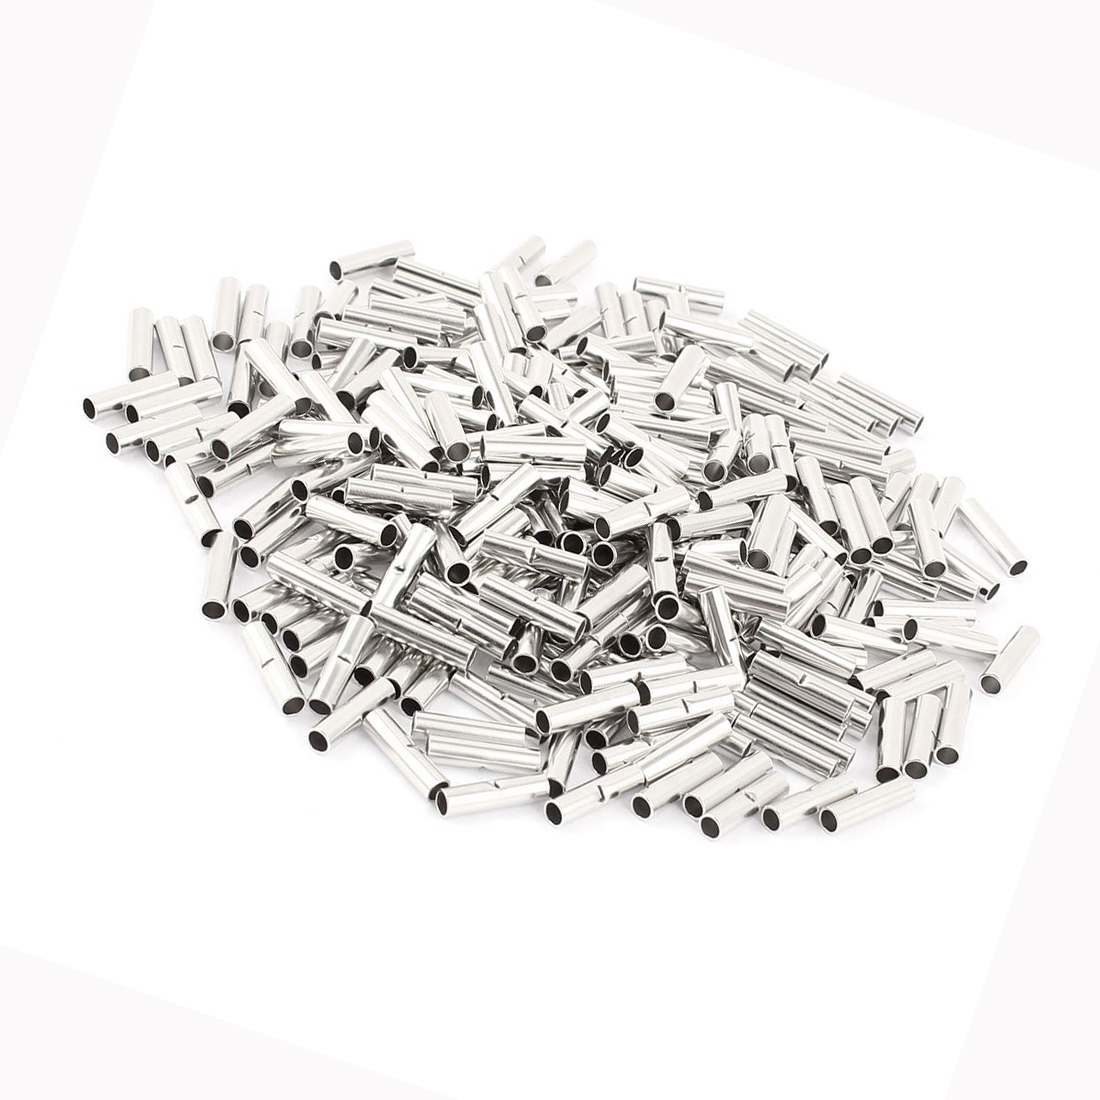 HHTL-300Pcs BN-2 Uninsulated Butt Connectors Terminal for 16-14 A.W.G Wire